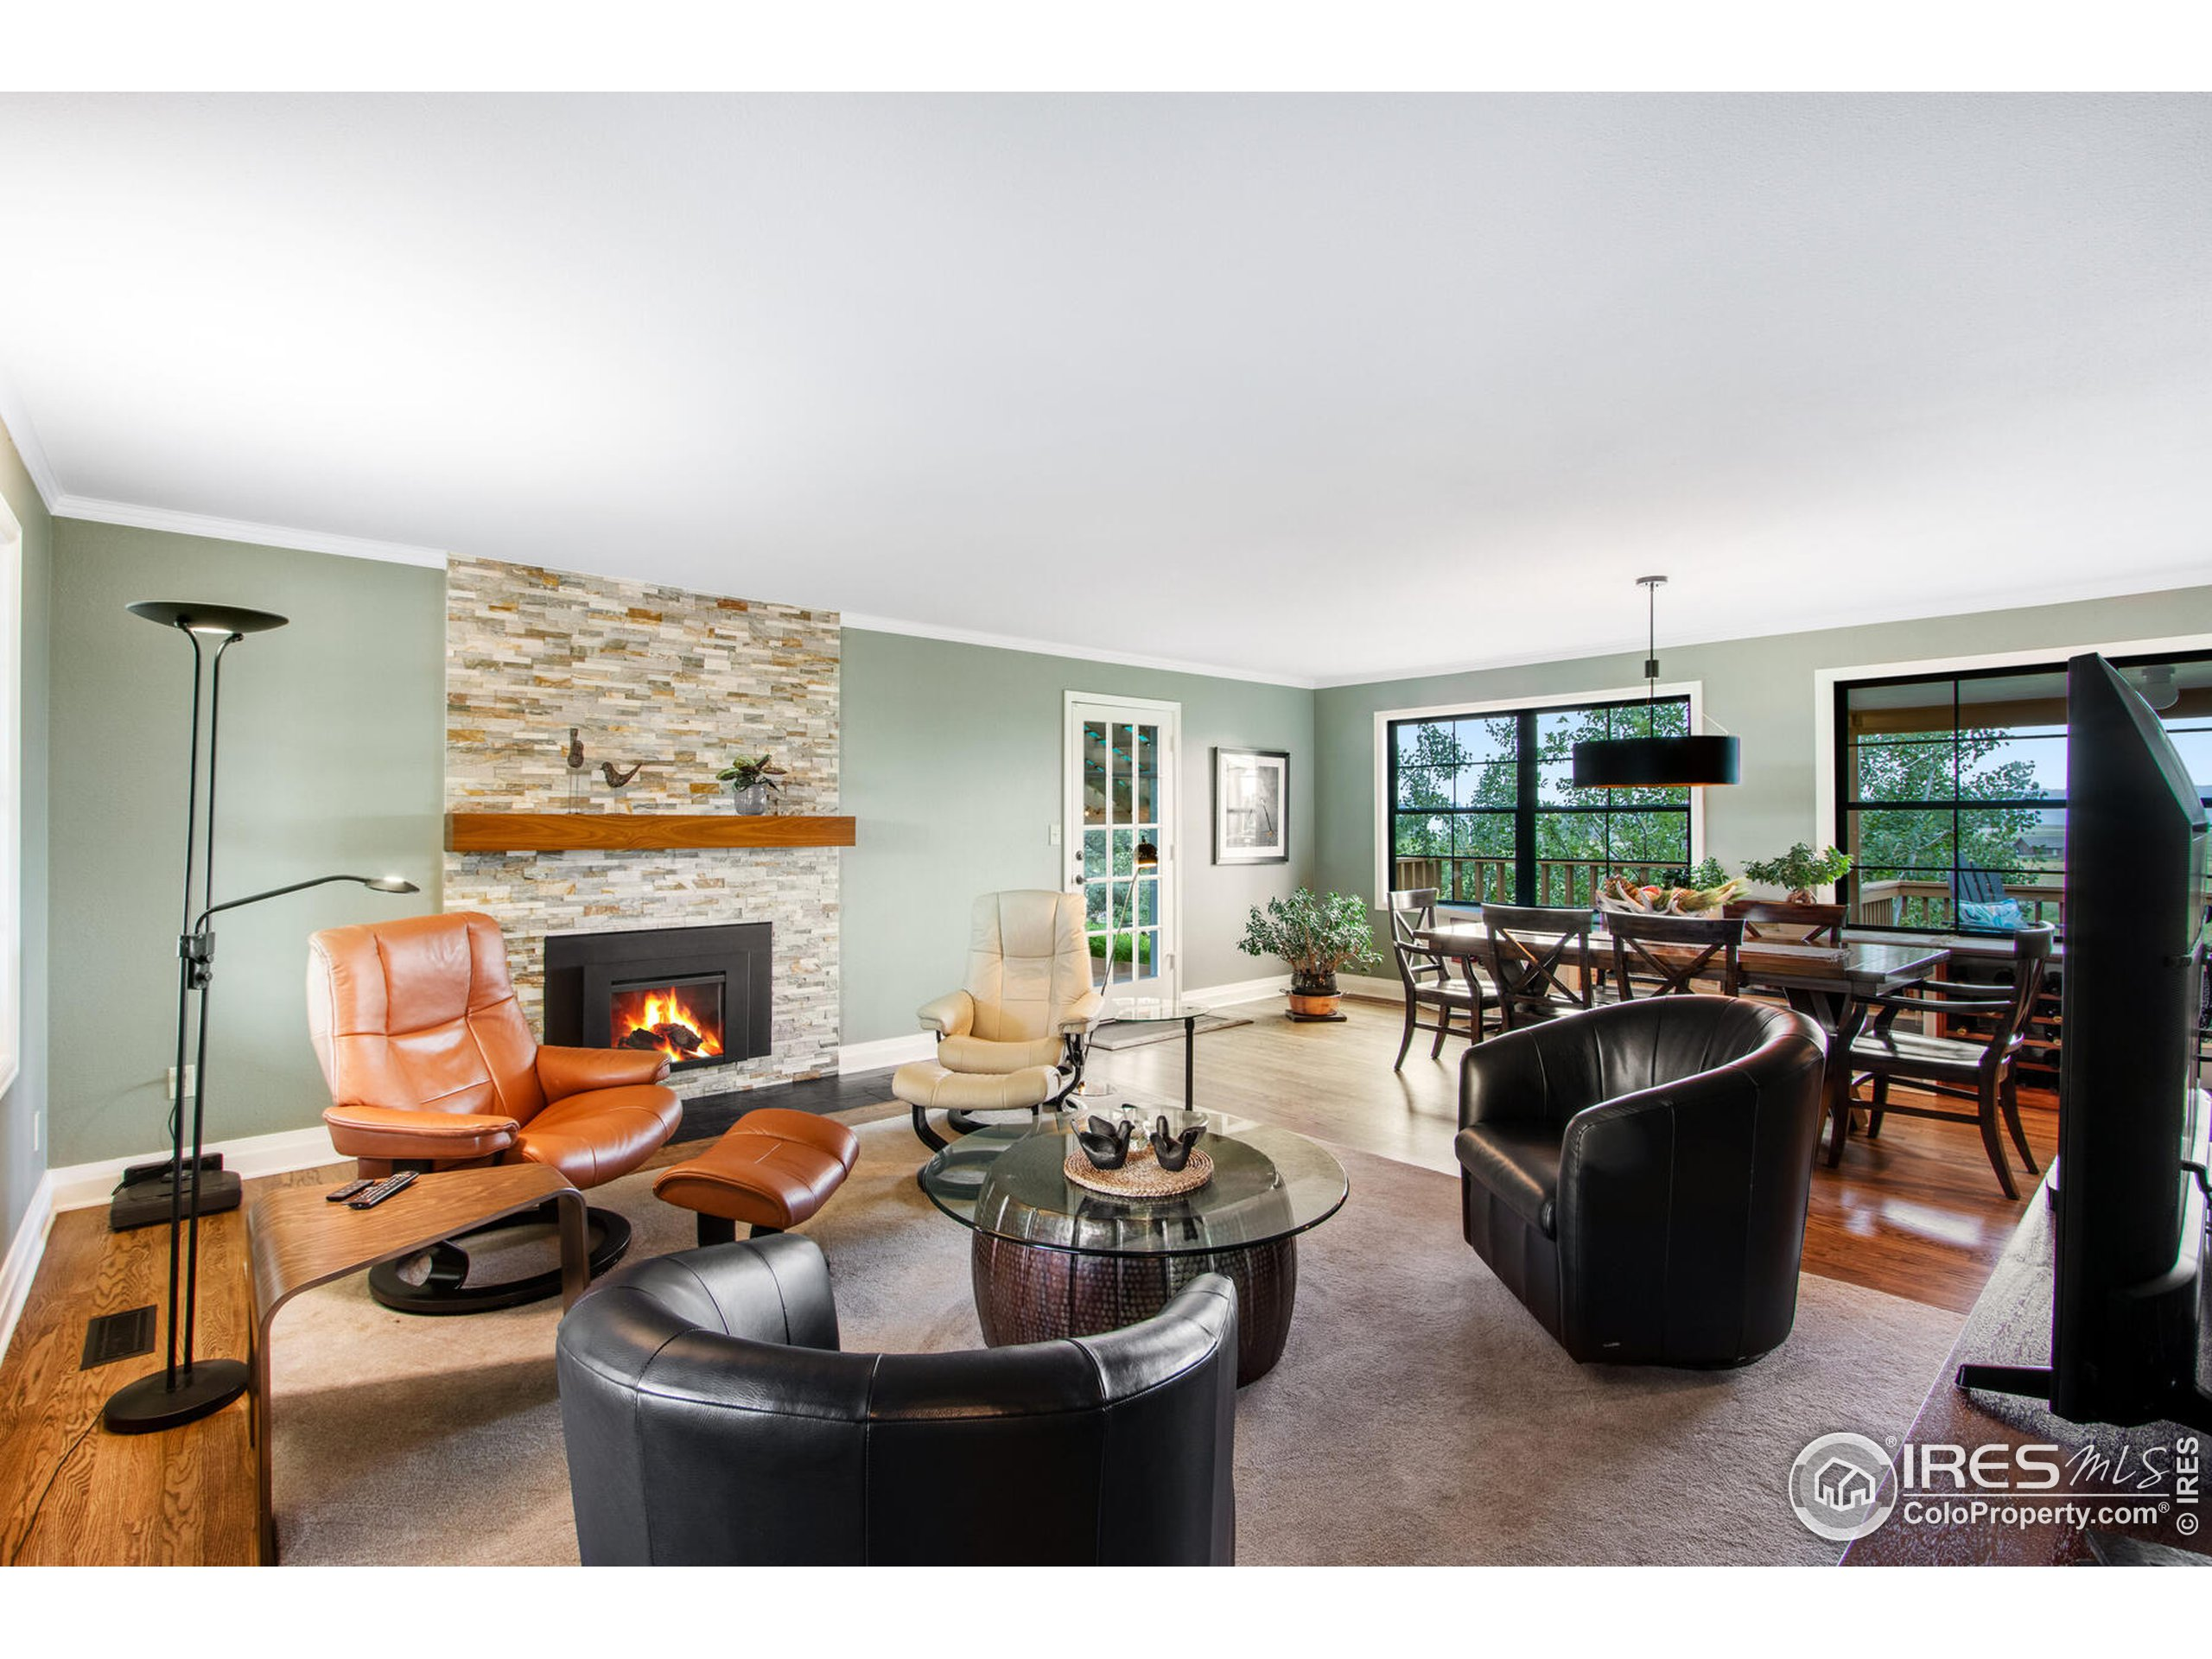 Stone Gas fireplace lights up the cozy main level living space, open concept layout.